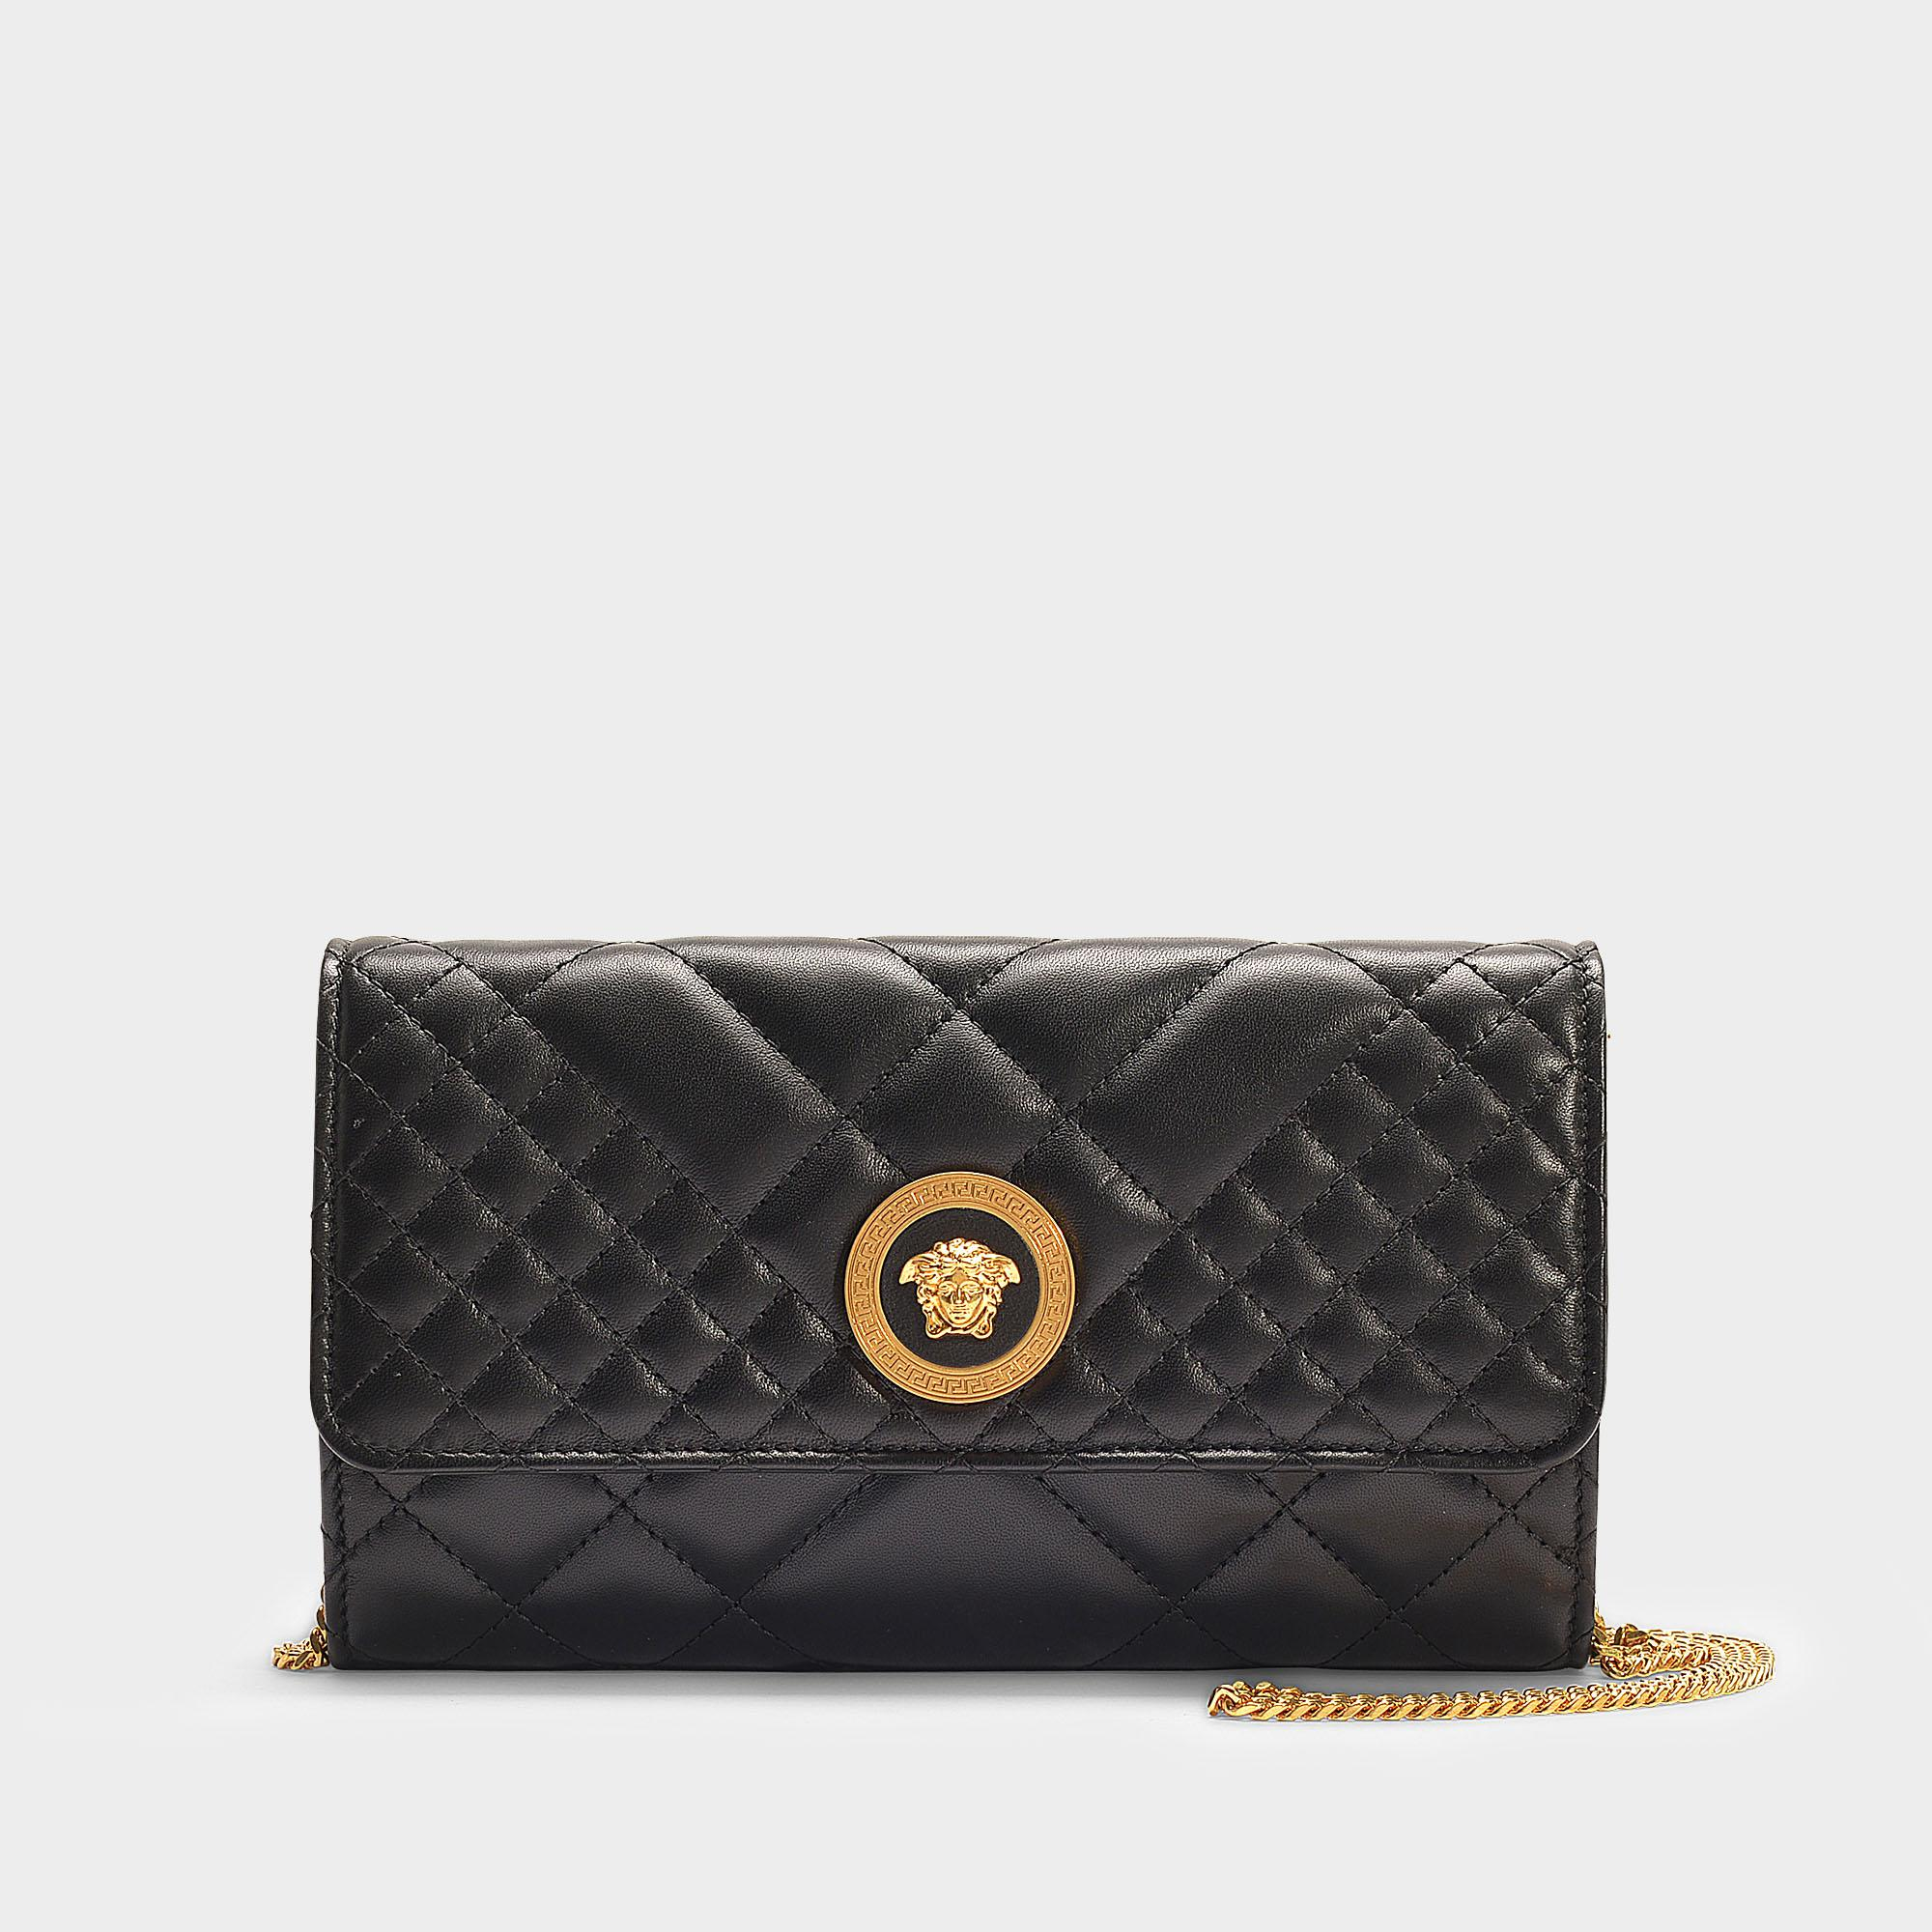 Lyst - Versace Medusa Evening Bag In Black Quilted Nappa Leather in ... 4d315b845d43f